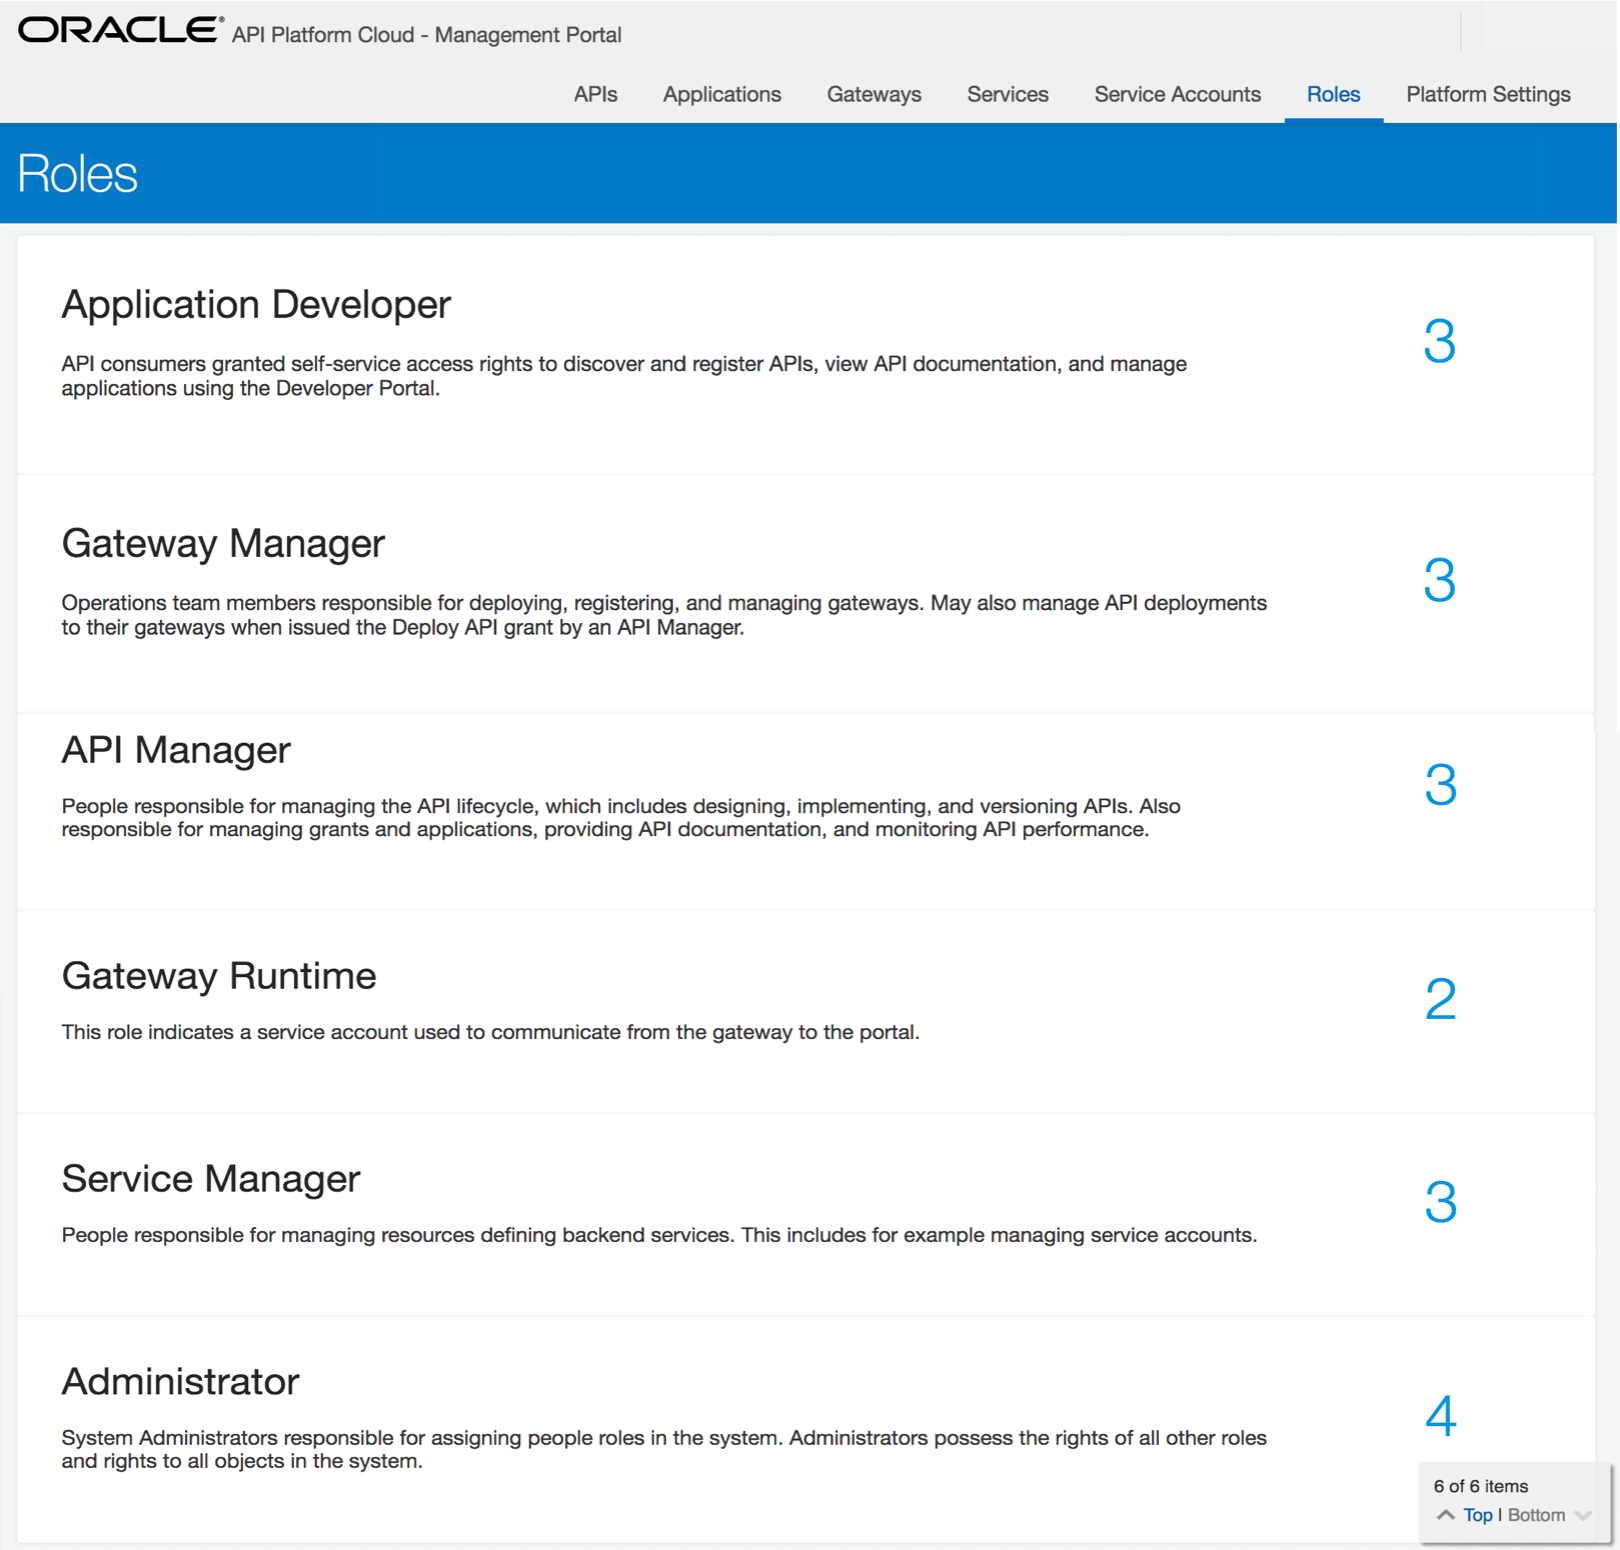 The roles page - Implementing Oracle API Platform Cloud